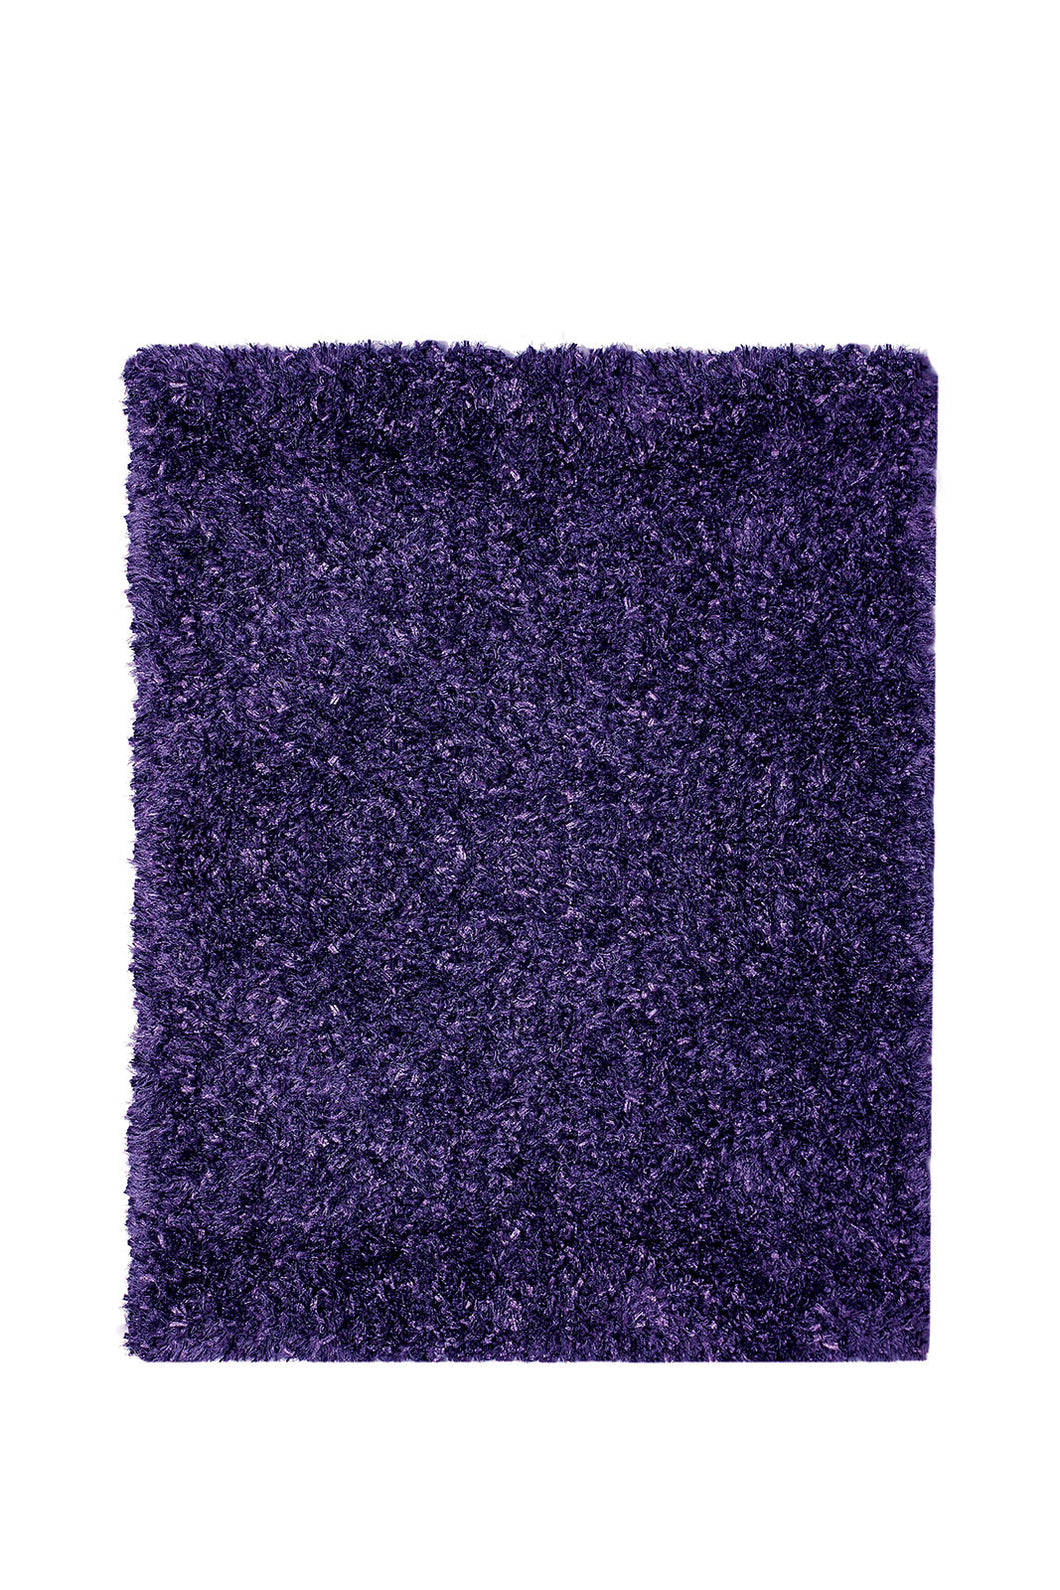 Annmarie Purple 5' X 8' Area Rug